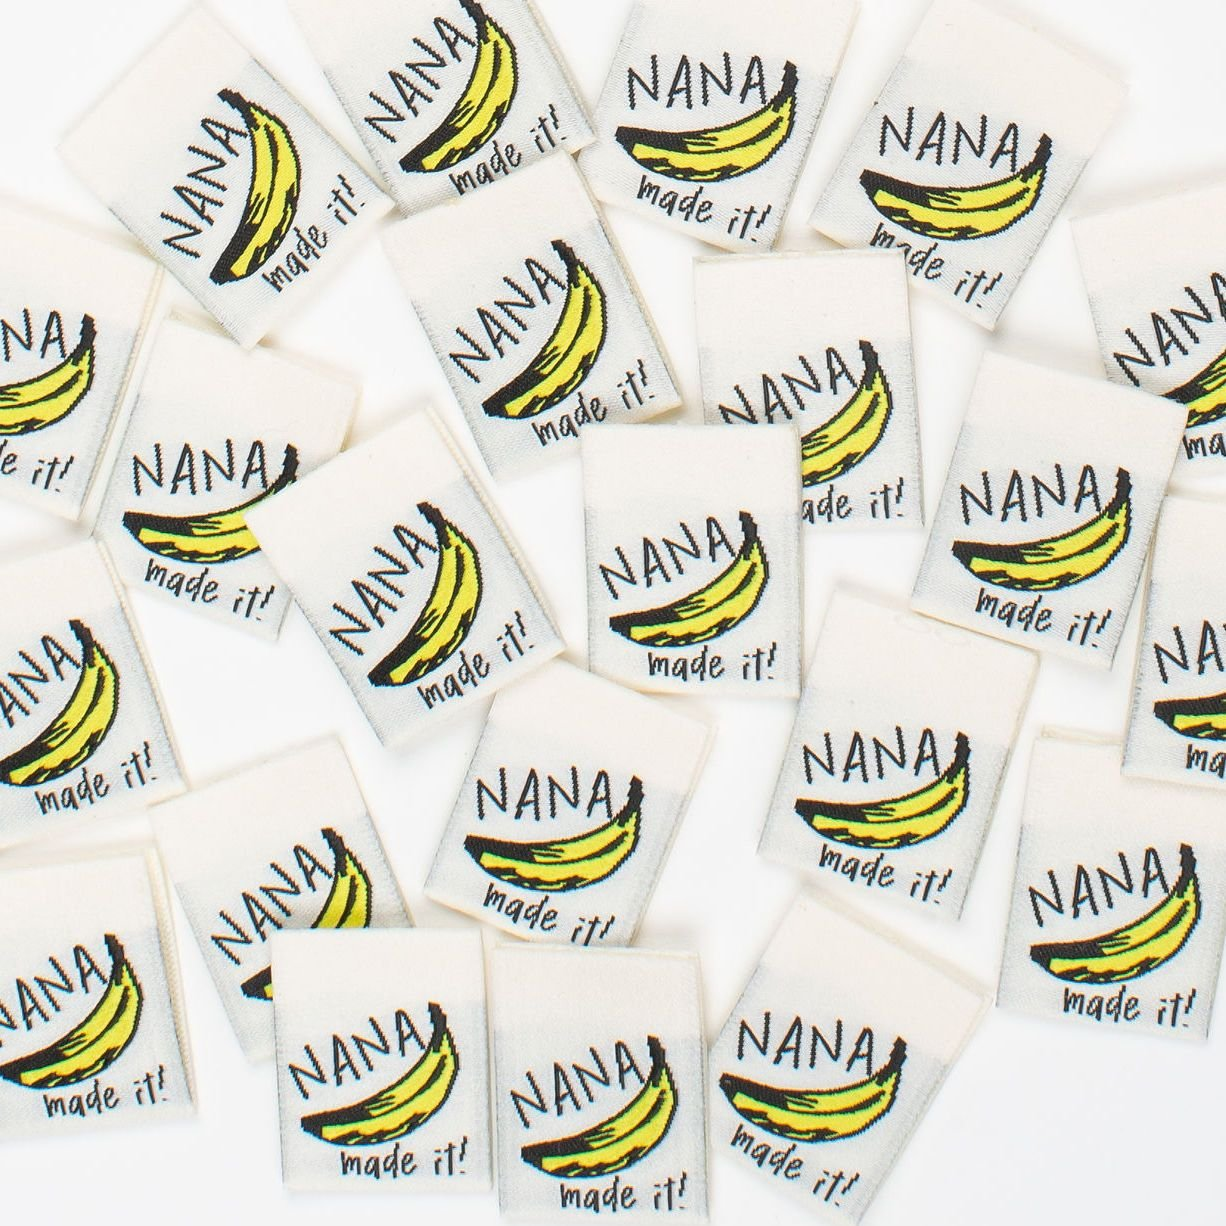 NANA MADE IT Woven Sewing Labels by Kylie and the Machine